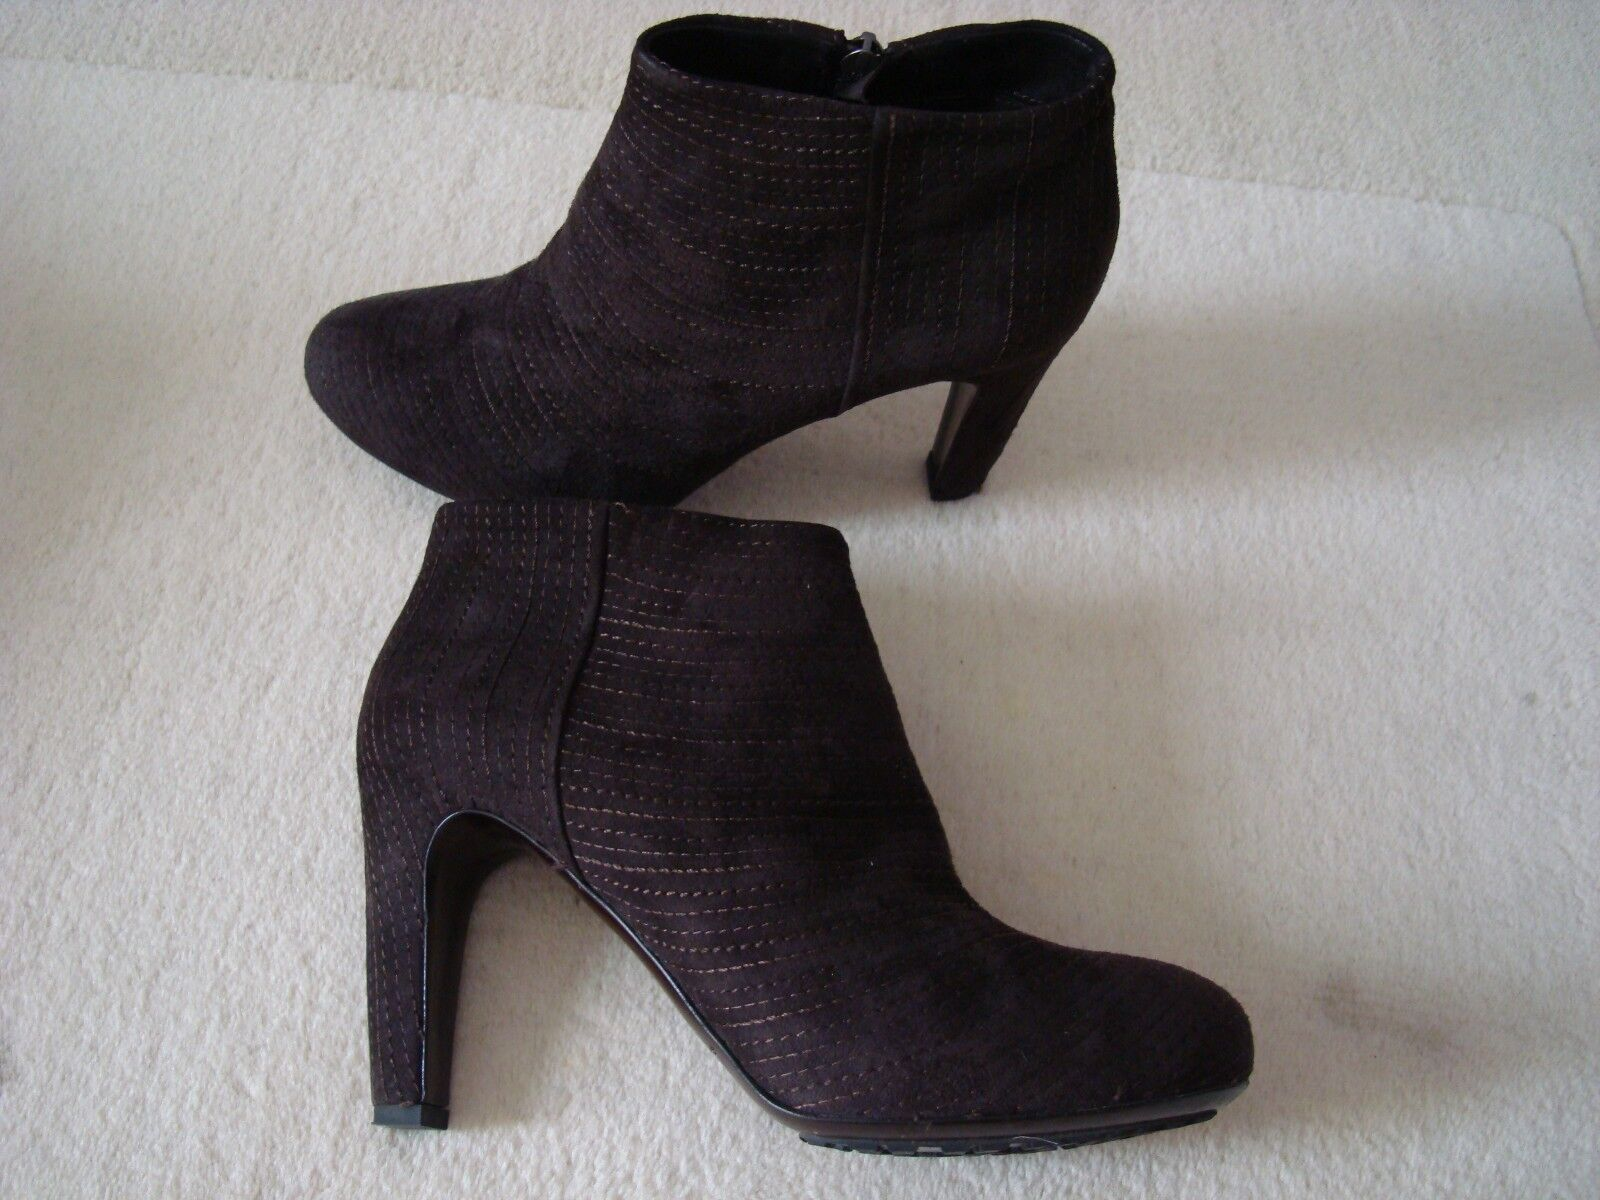 Roberto Del Carlo Brown Suede Ankle Booties Size 37.5